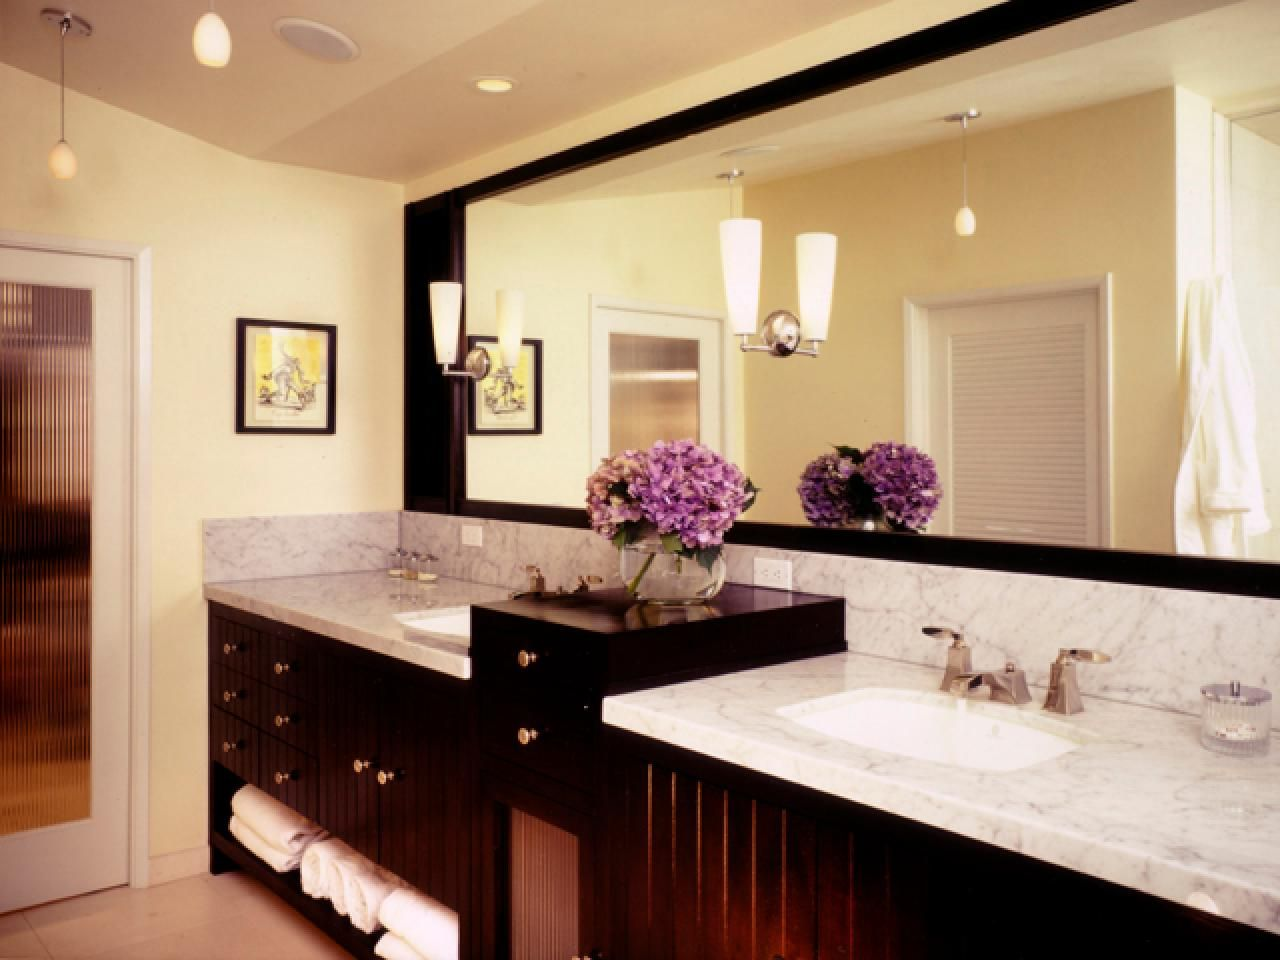 Big Vanity Mirror With Lights Adorable Designing Bathroom Lighting  Remodel Bathroom Plumbing Fixtures Design Inspiration